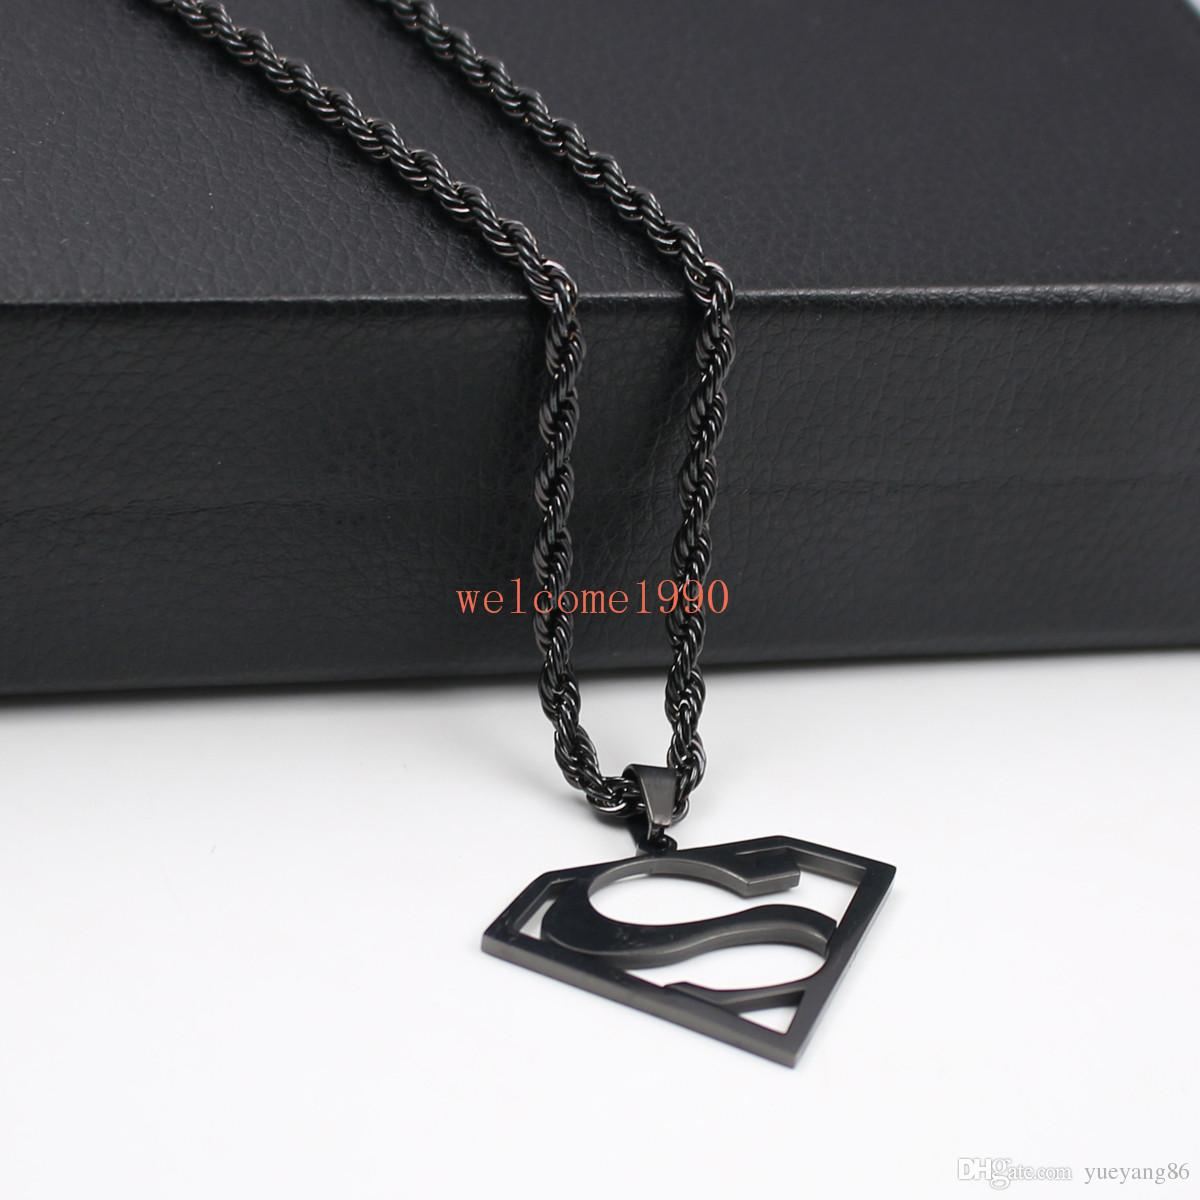 choose Gold silver black Stainless Steel 1.5 inch Superman logo Pendant Men's Gifts Fashion Rope chain necklace 22 inch 4mm